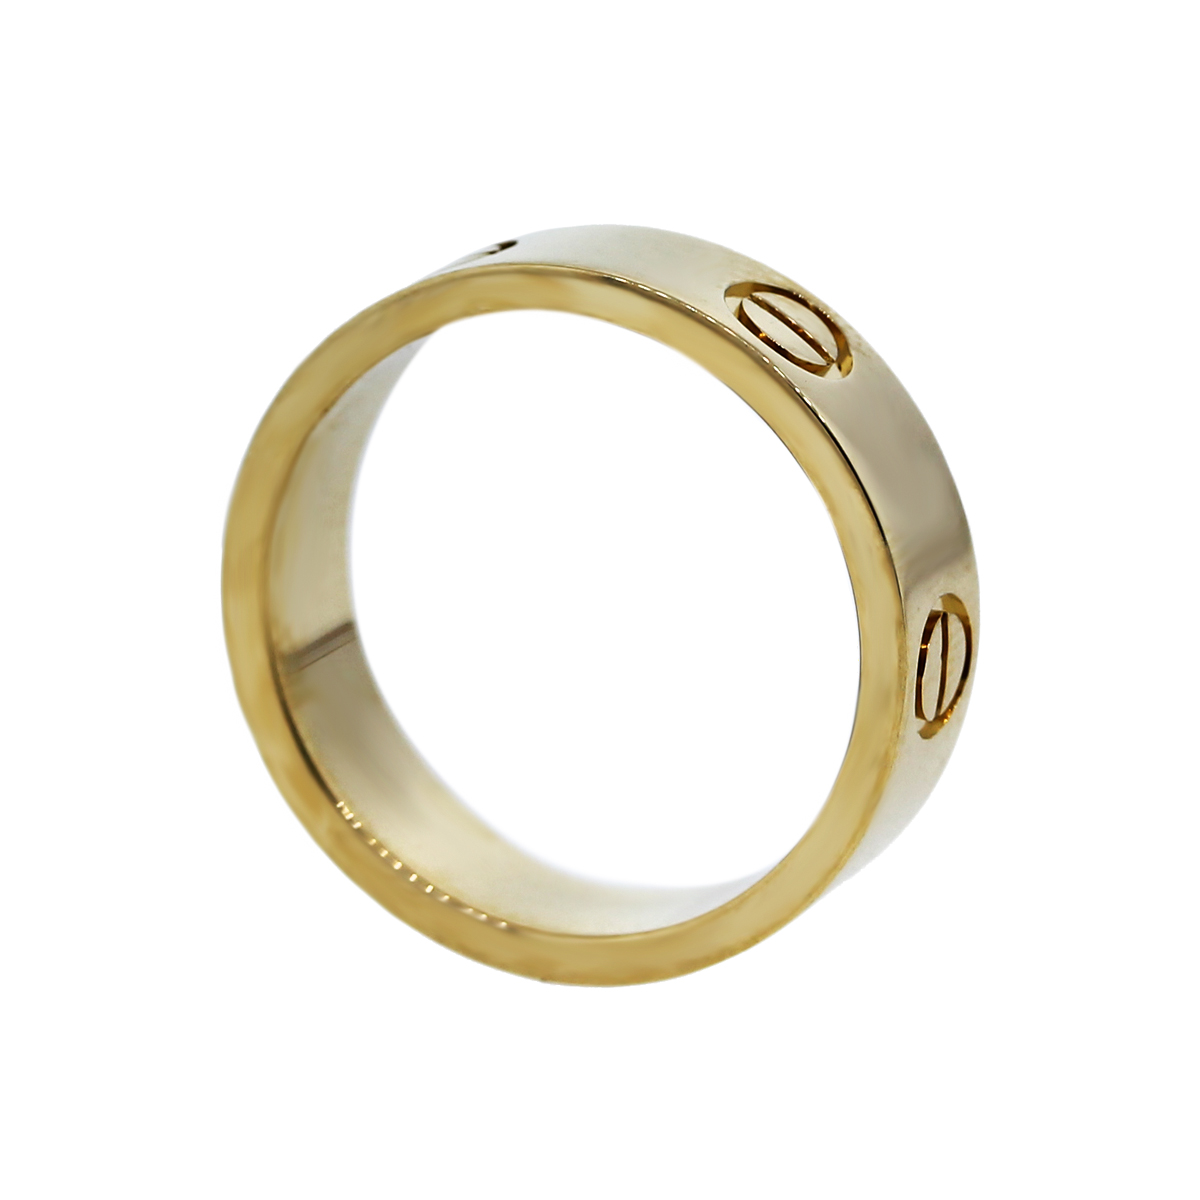 Cartier 18K Yellow Gold Love Ring Size 54-Boca Raton Cartier Love Rings